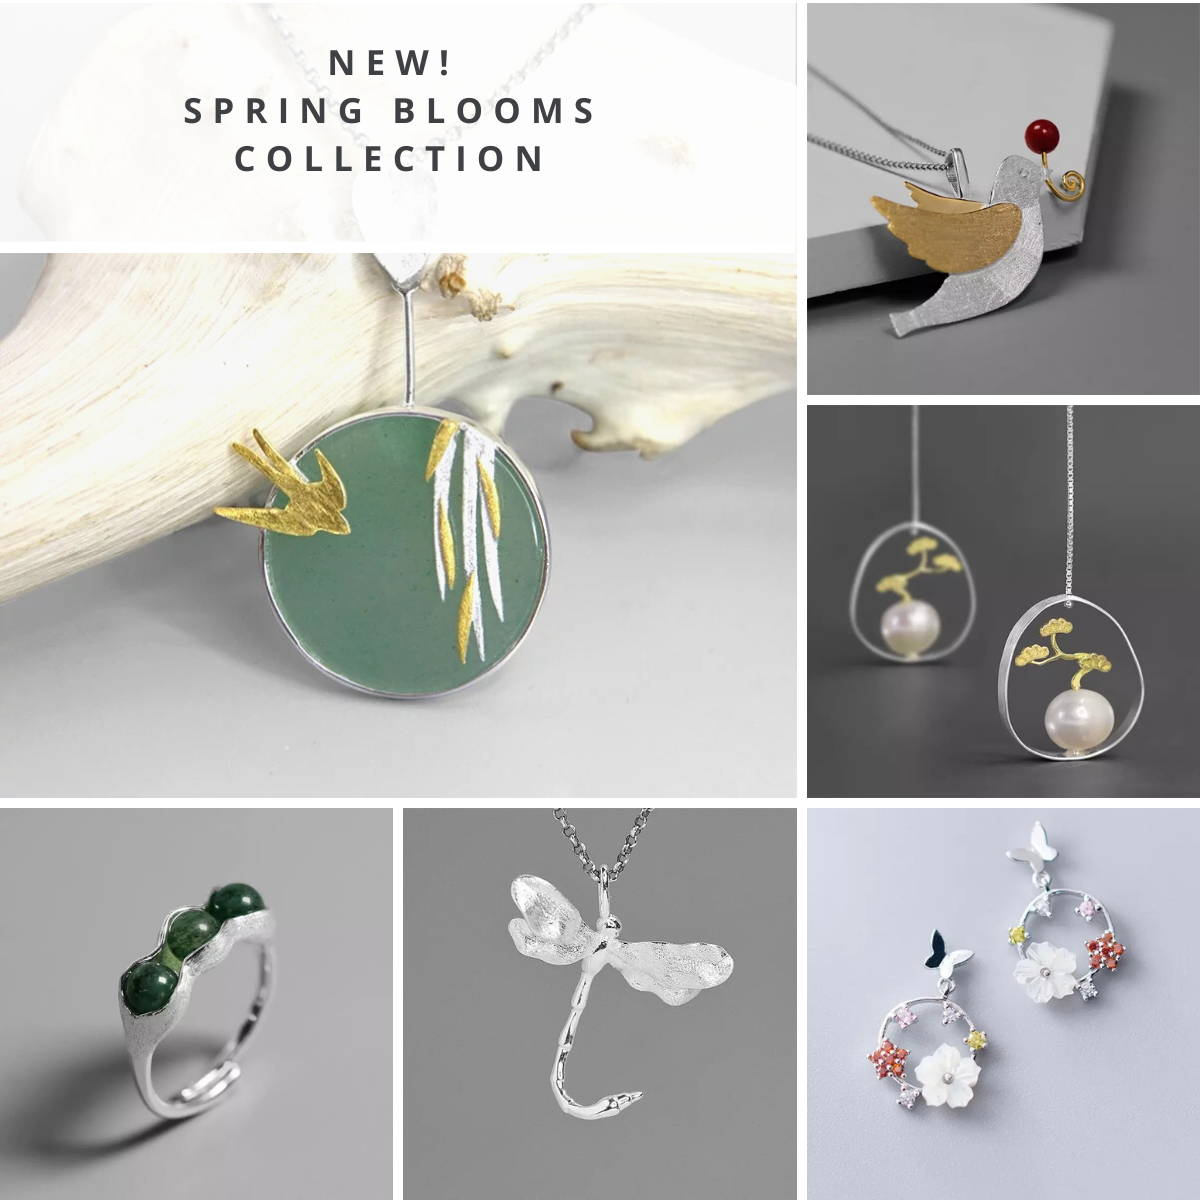 Spring Blooms Jewellery Collection